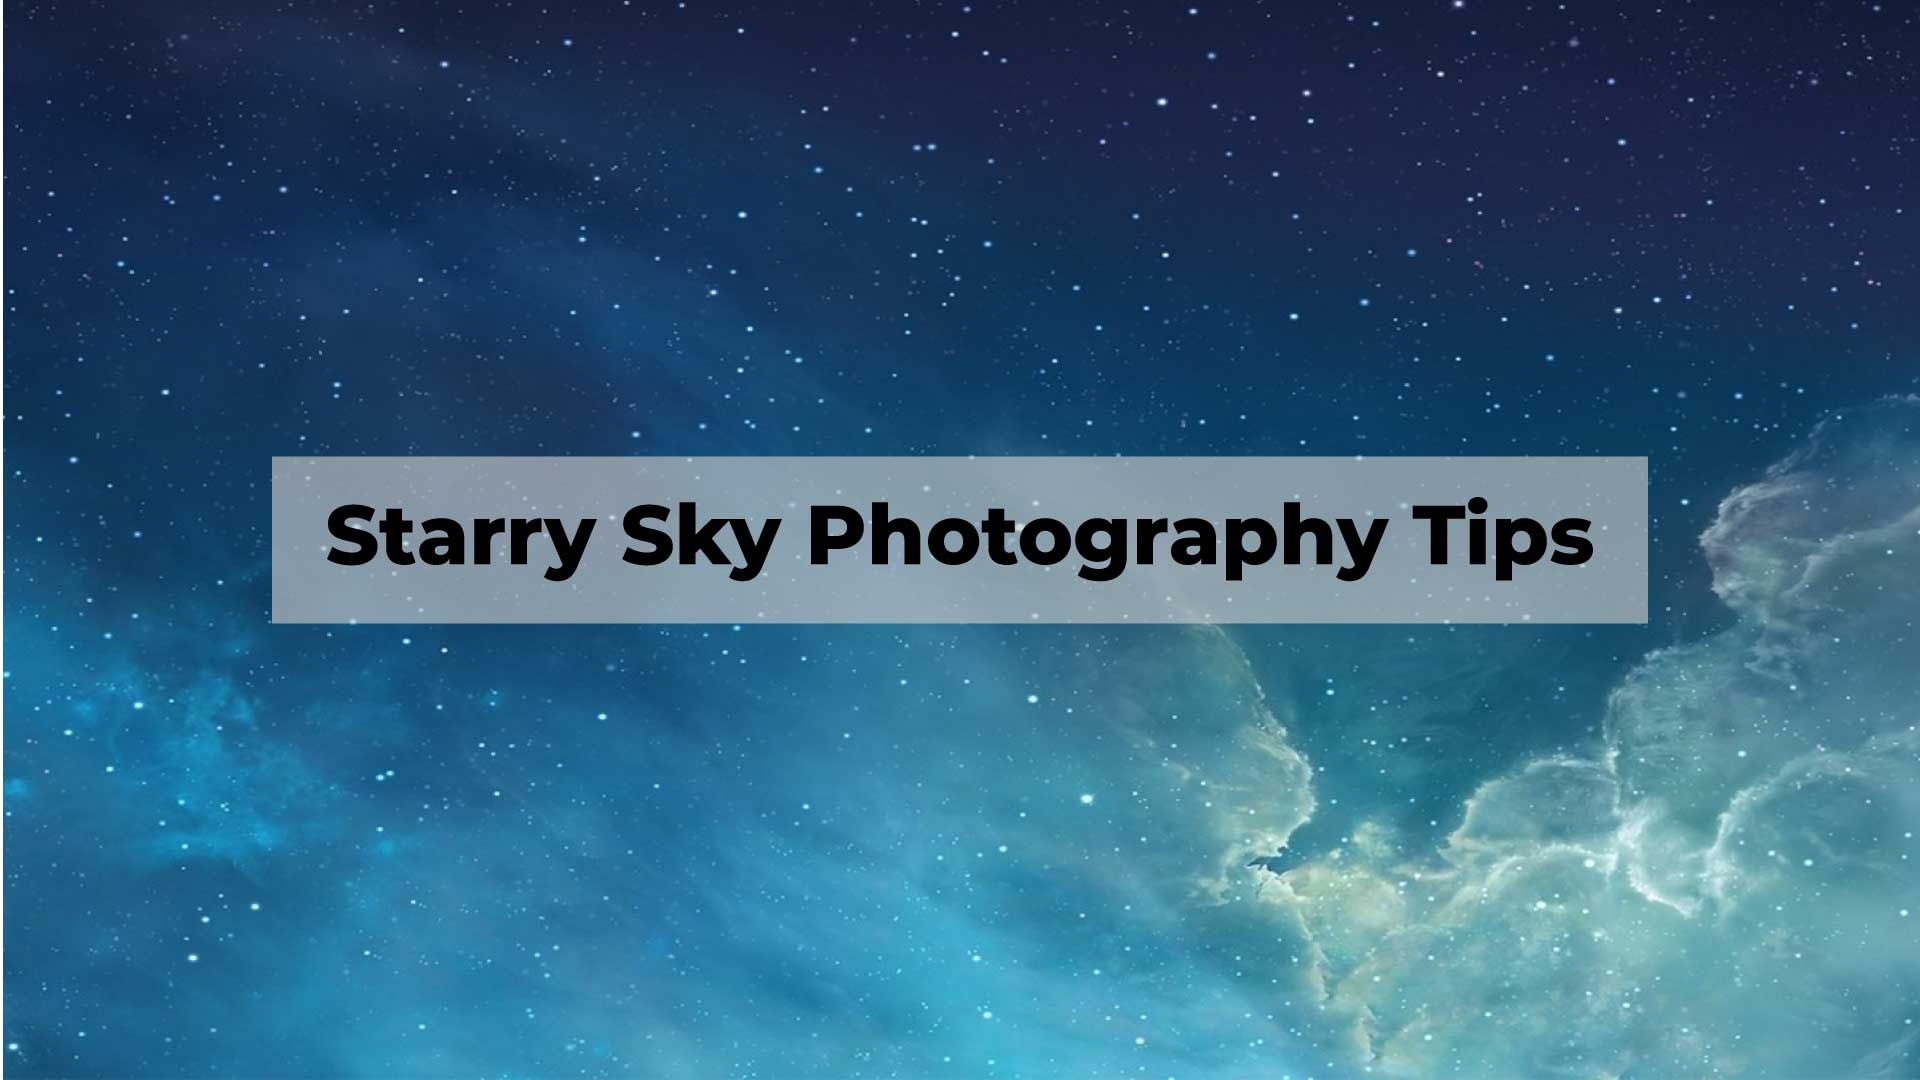 Starry-Sky-Photography-Tips